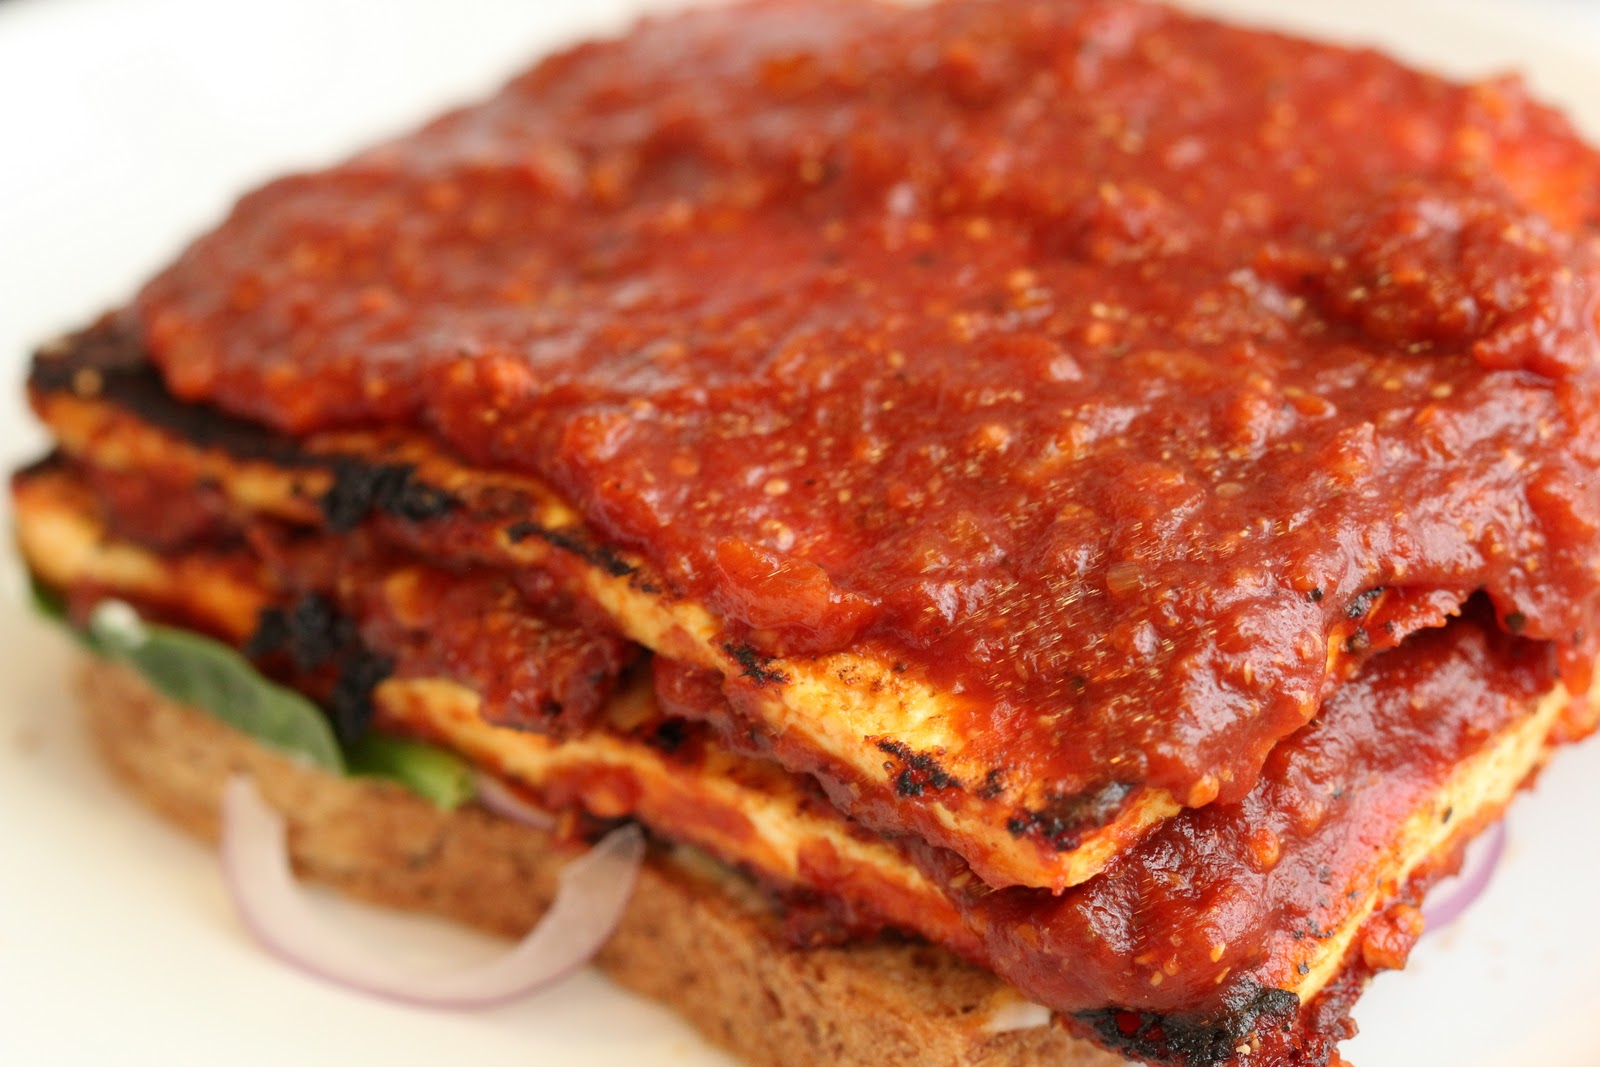 ... : South Carolina Barbecue Tofu Sandwich: A Recipe from Spork Foods